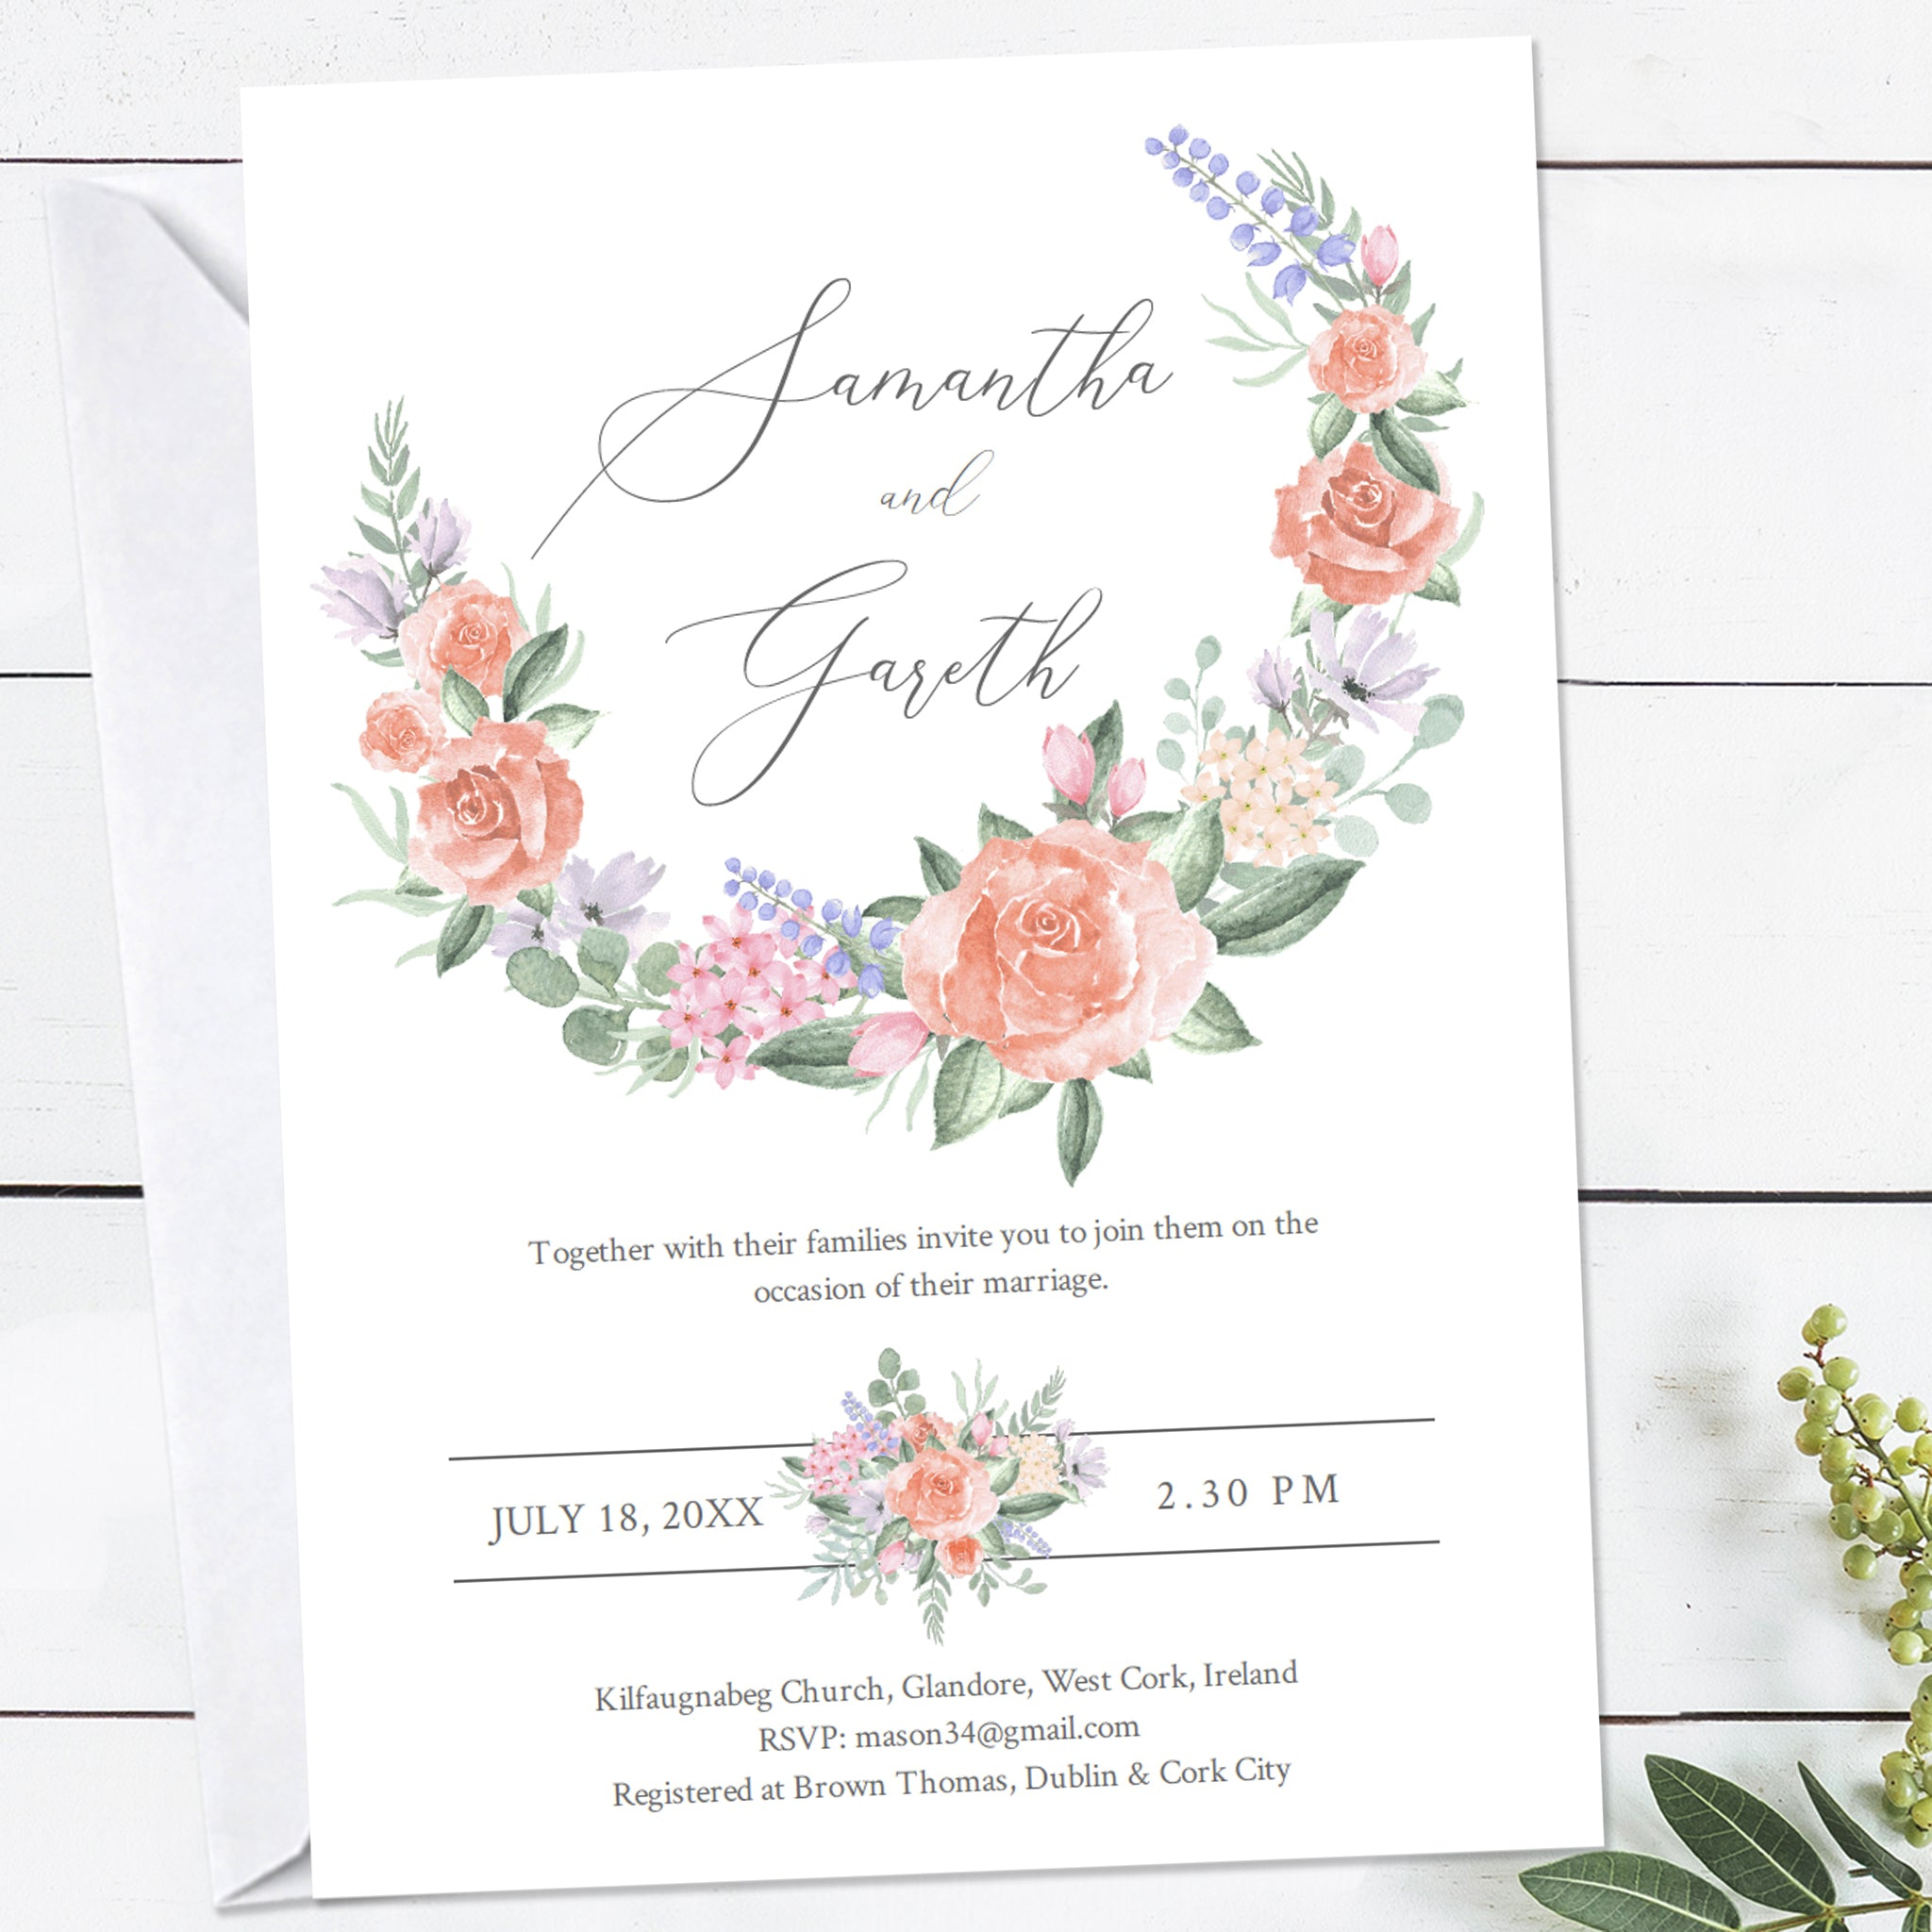 Wedding invitation template with a Victorian vintage pastel rose watercolor